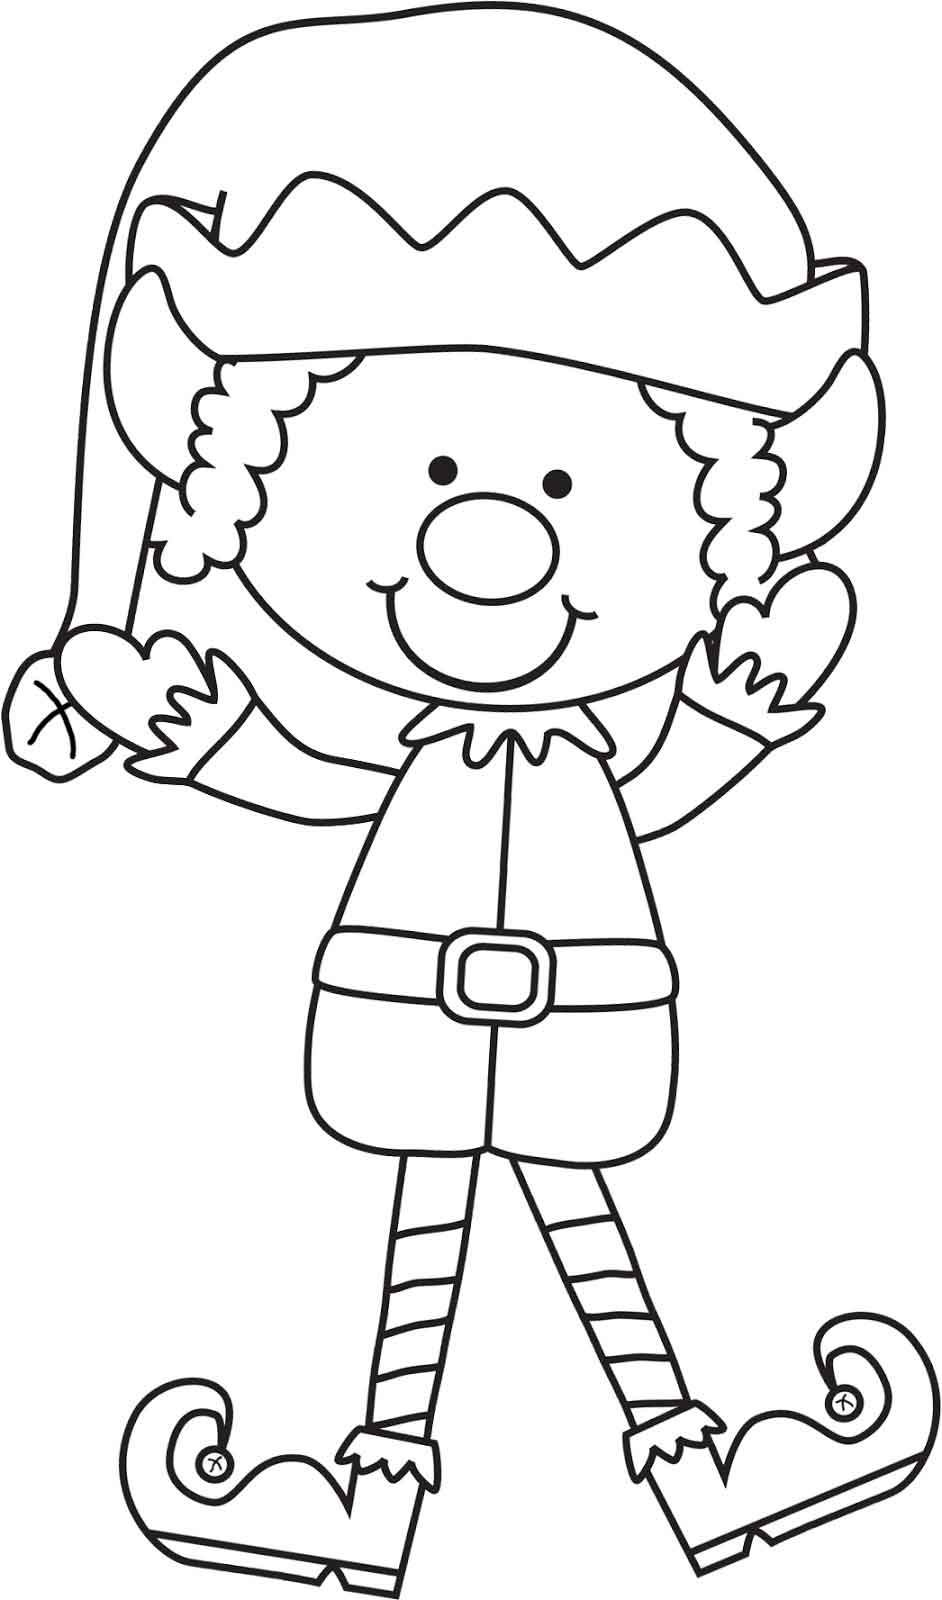 elf on the shelf coloring book 7 elf on the shelf inspired coloring pages to get kids book coloring shelf elf the on